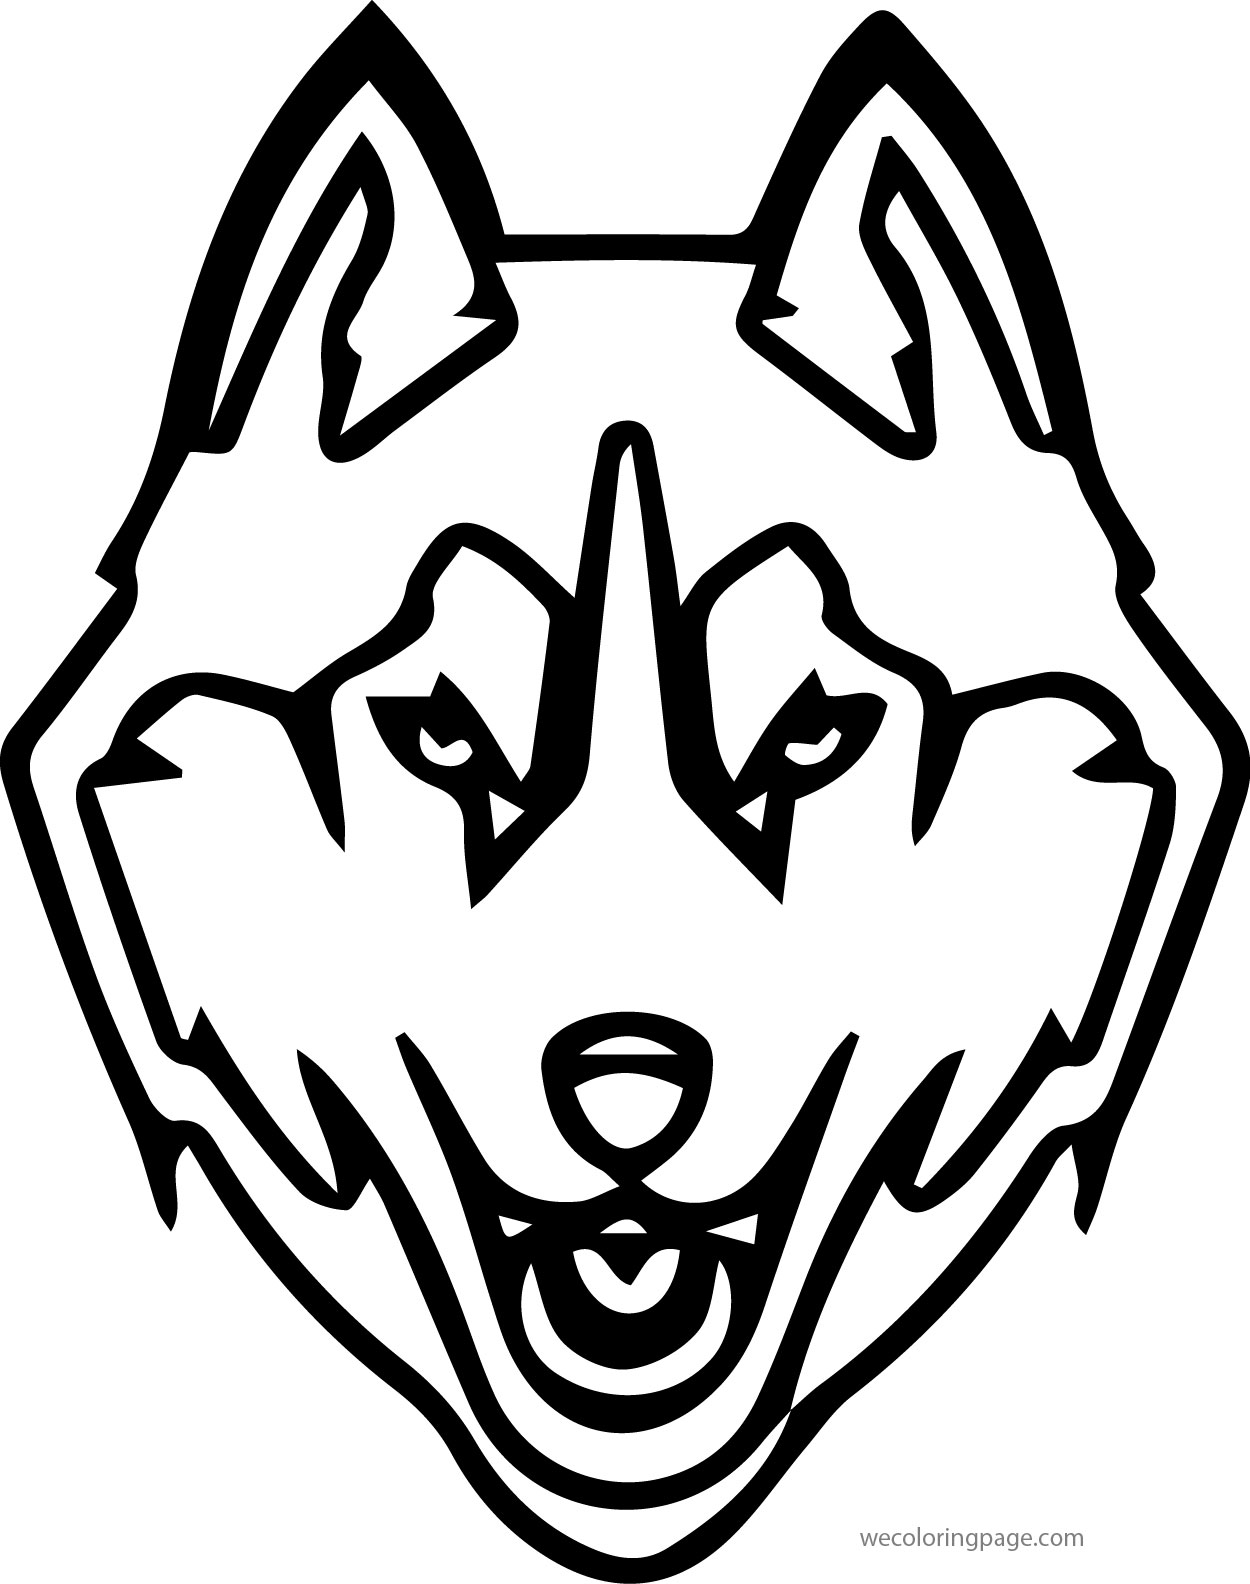 Husky 15 Coloring Page